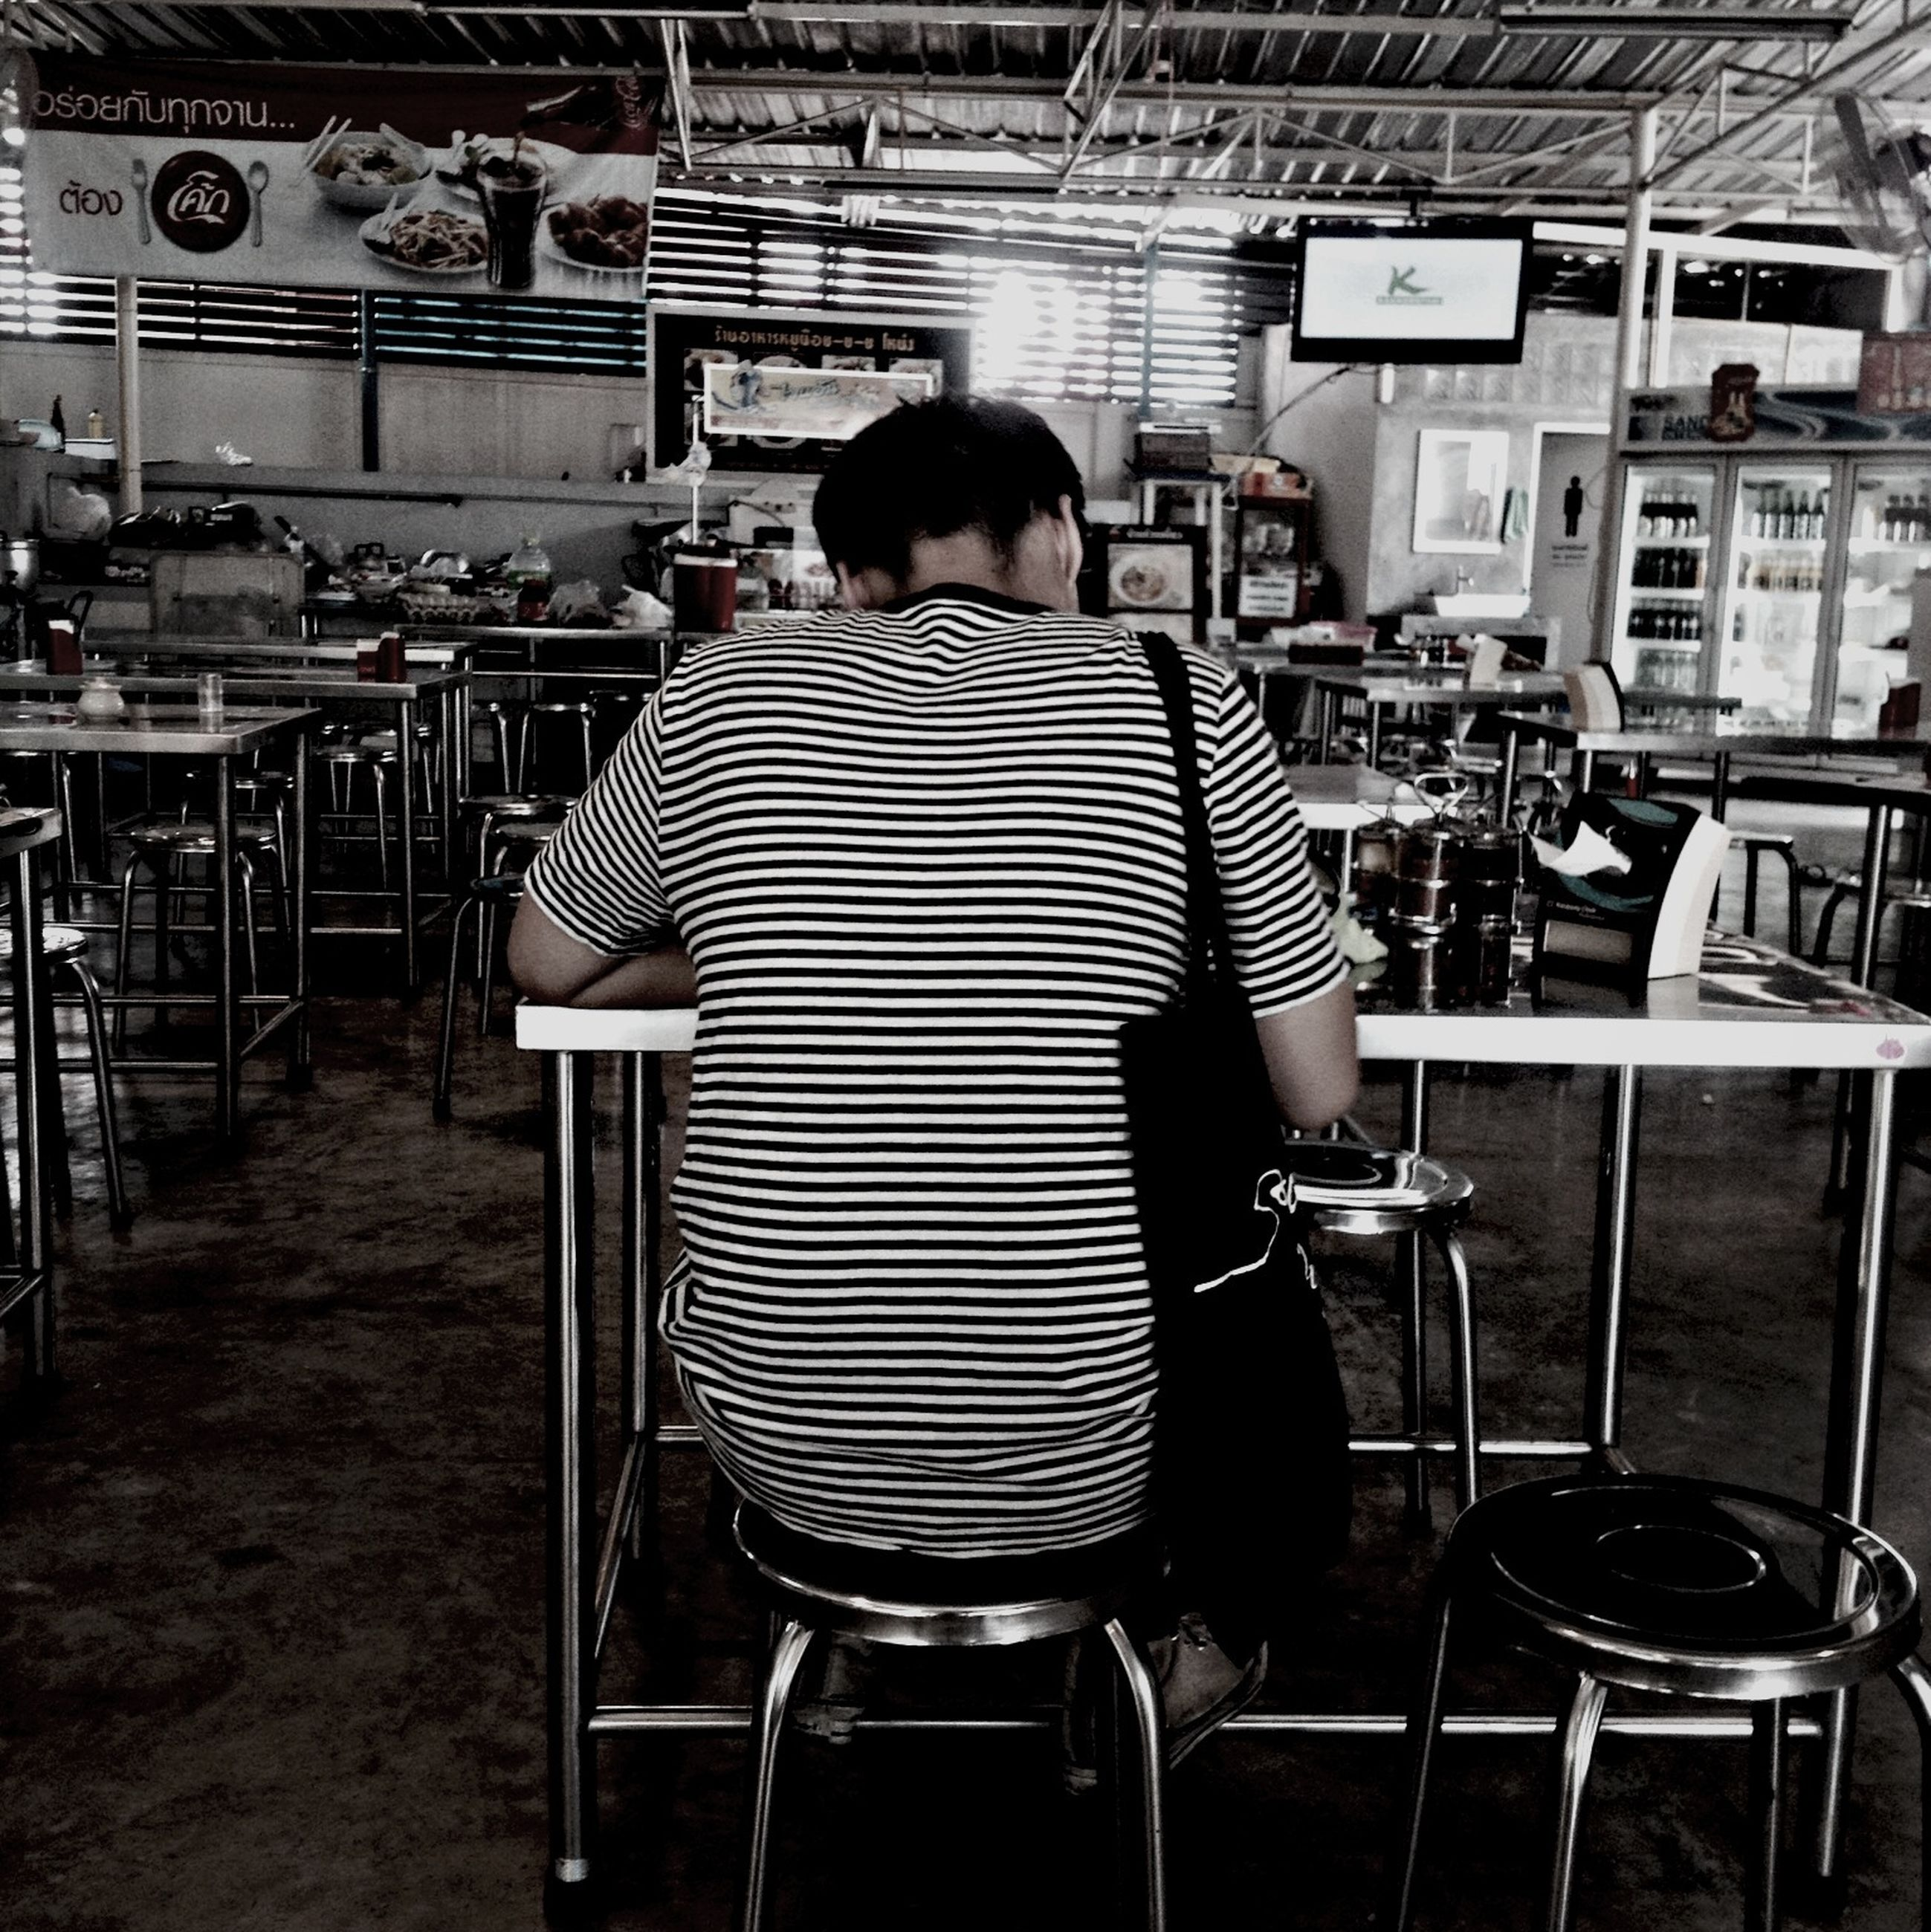 chair, rear view, men, sitting, lifestyles, indoors, full length, leisure activity, person, casual clothing, architecture, built structure, relaxation, seat, table, standing, sidewalk cafe